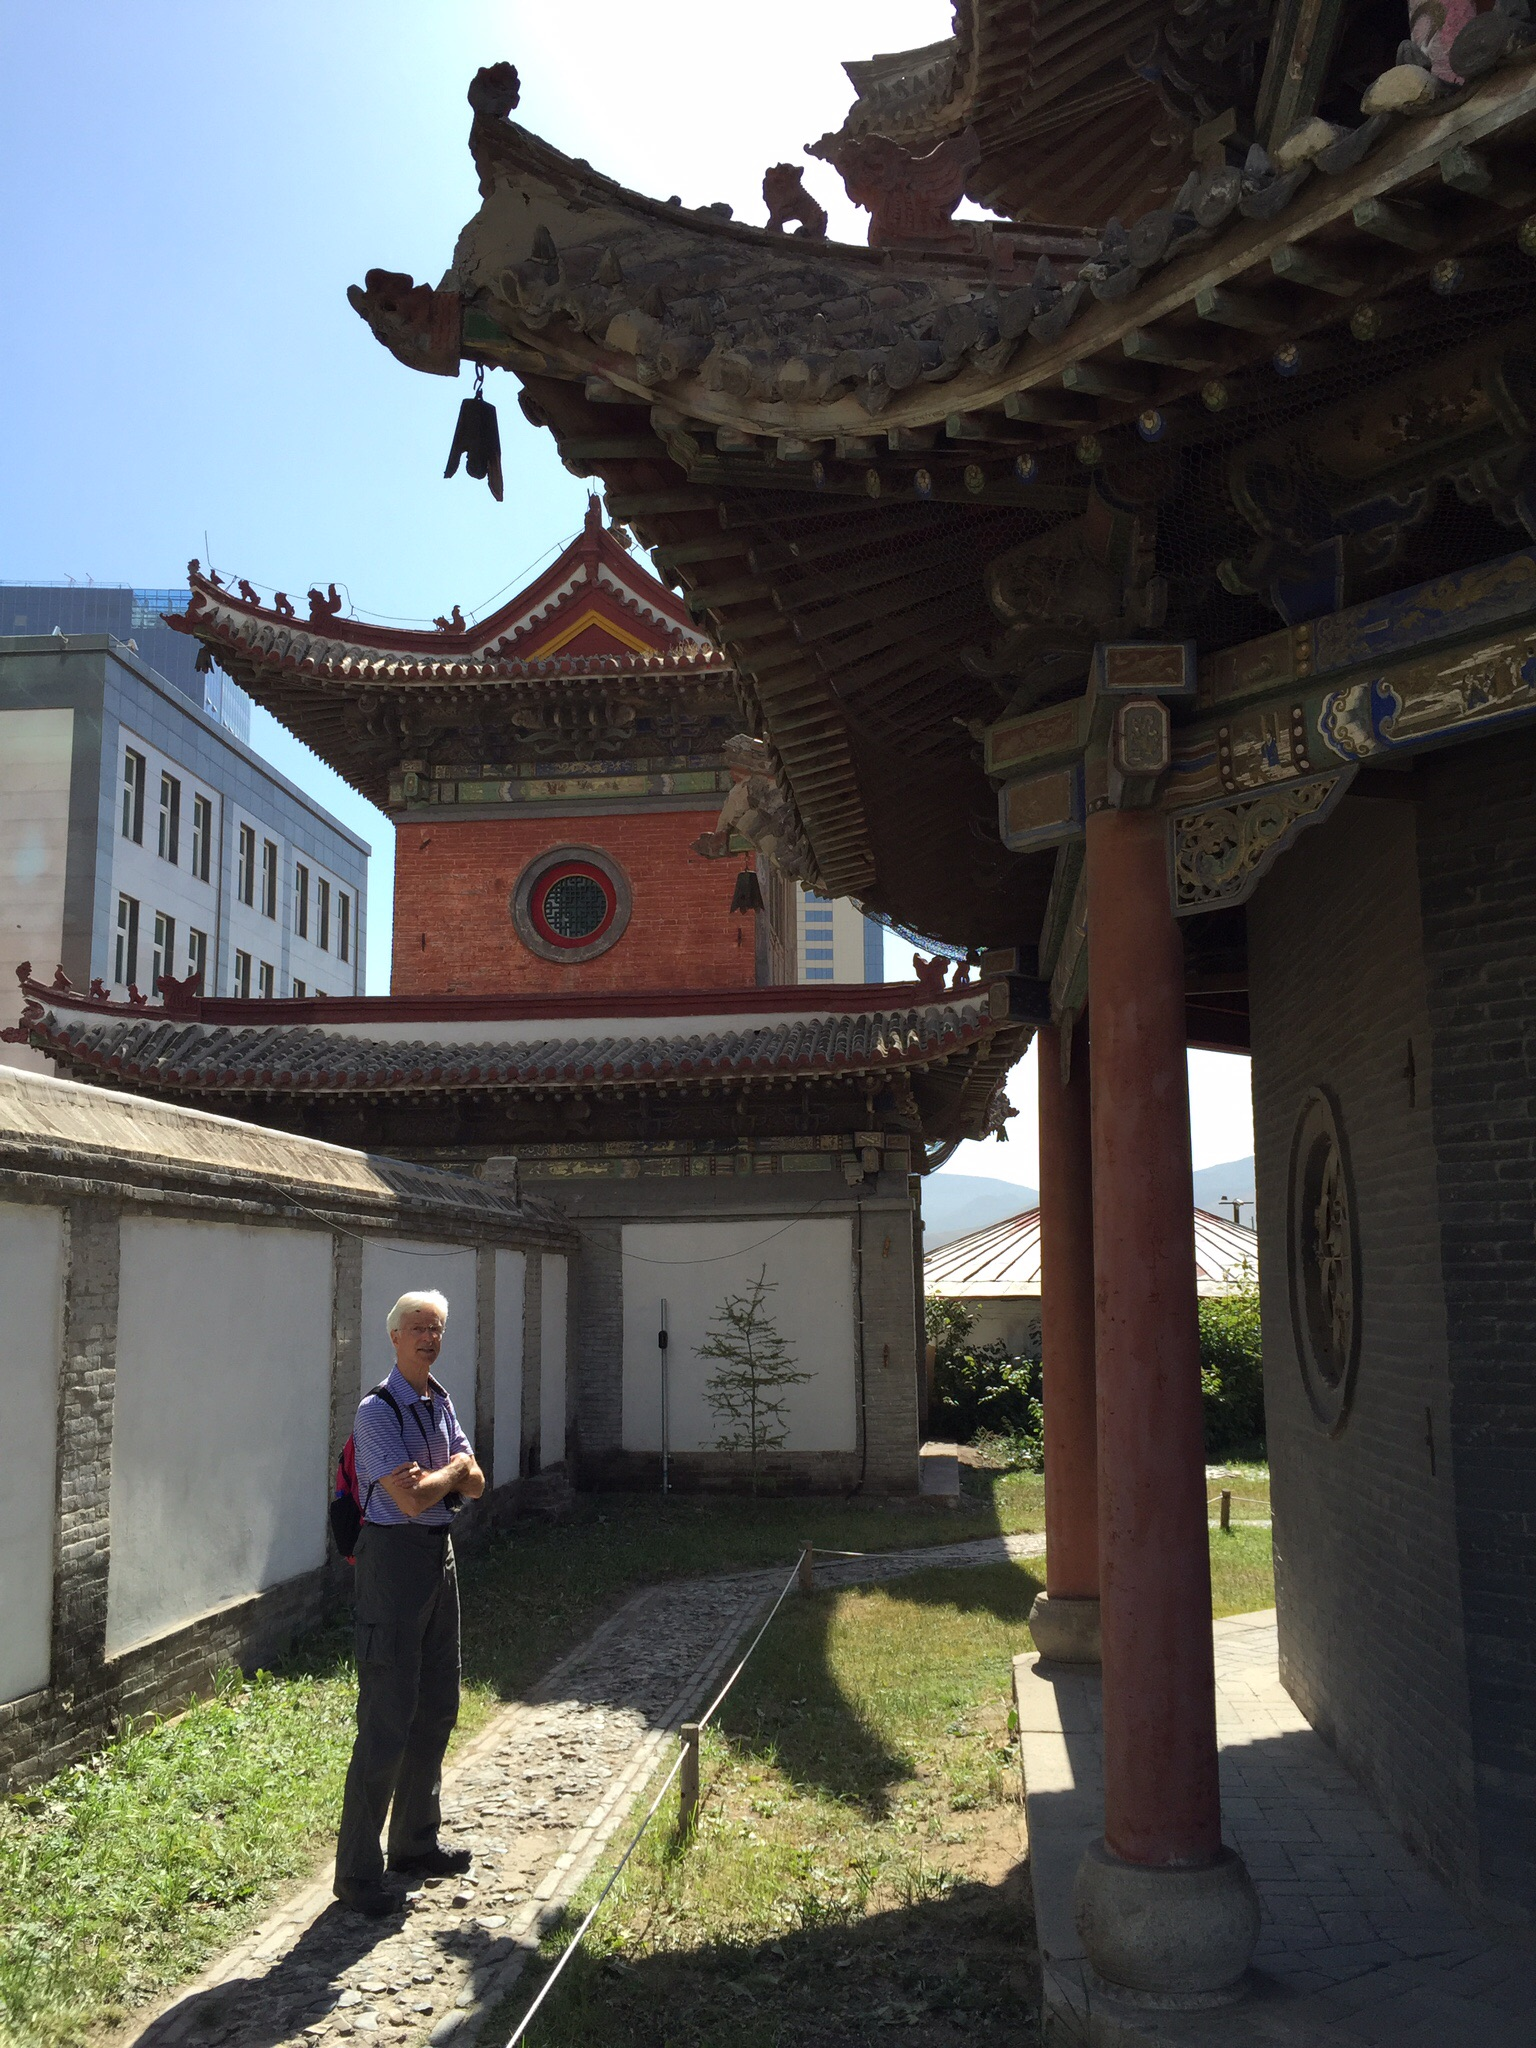 Not all of the displays were in the main temple. There were several smaller temples that housed additional displays. Here Steve stands outside one of those buildings. It was not open before we arrived; one of the women managing the displays rushed to open it for us.